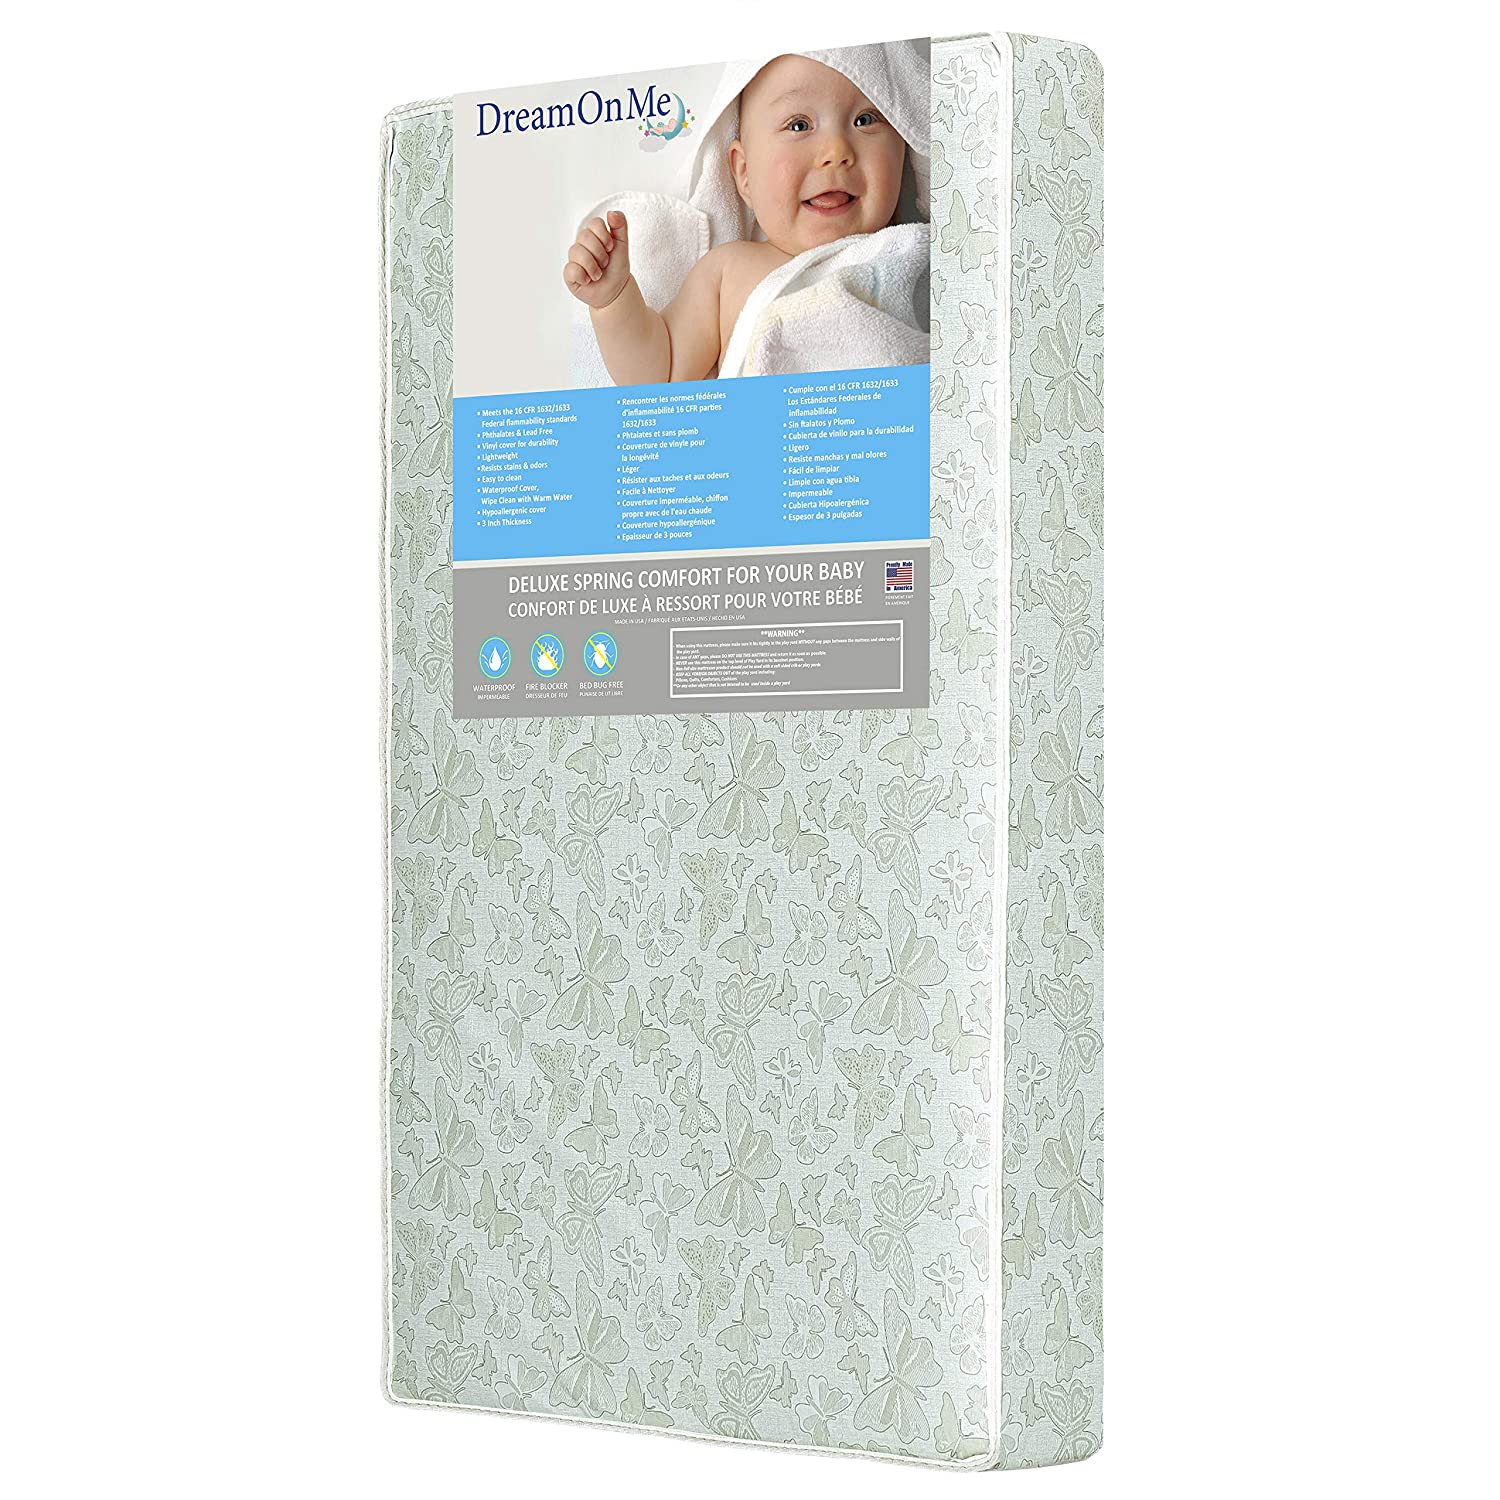 Foam Crib Toddler Bed Mattress Full Size 4 Inches for Standard Non-Allergenic